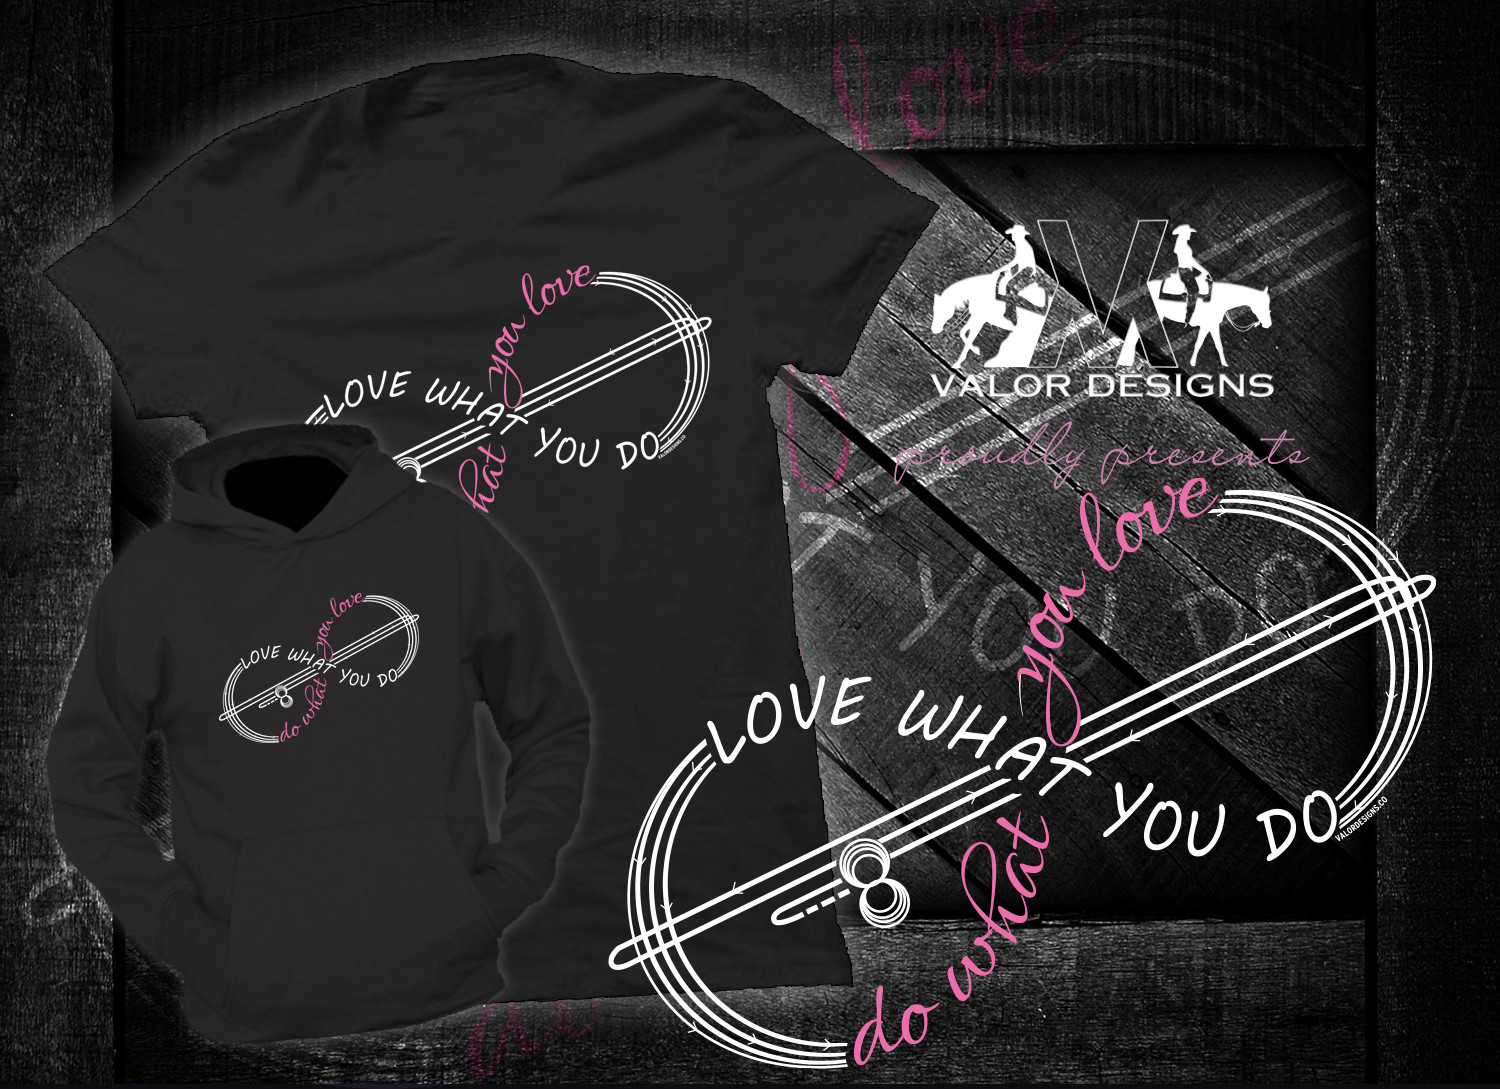 Love What You Do Reining Shirt